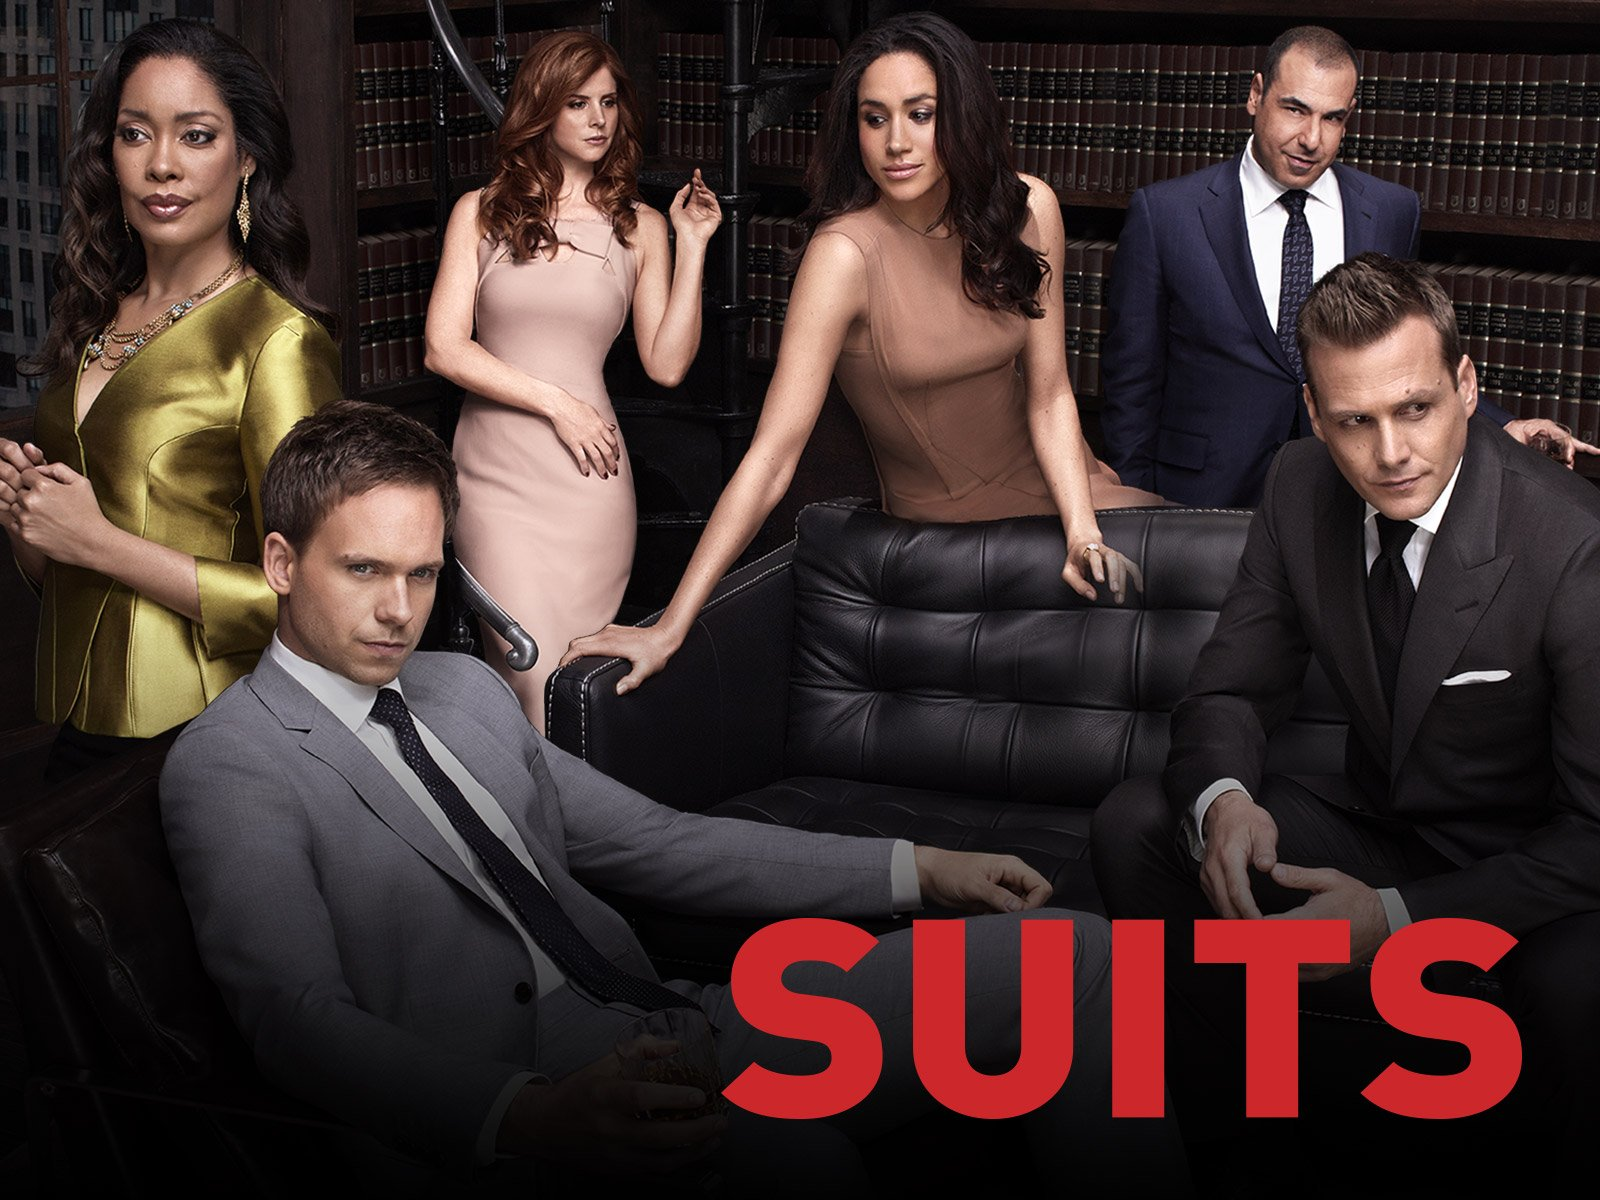 Suits (serial TV)